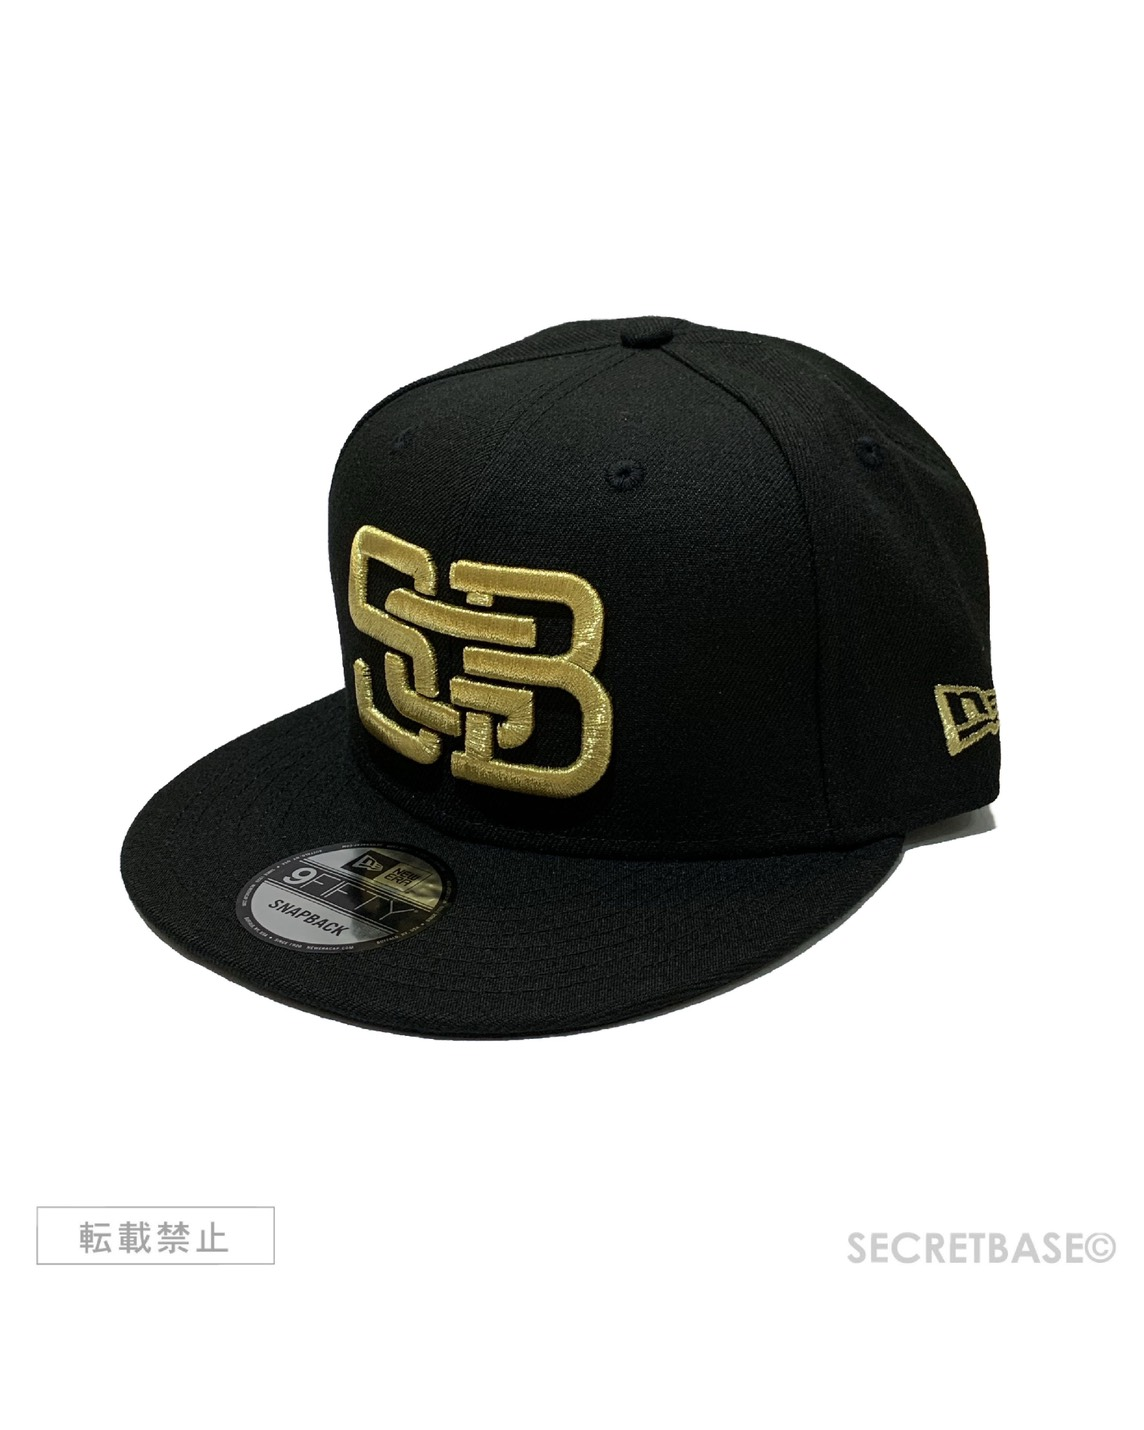 画像1: New Era × SECRETBASE 9FIFTY CAP SBG GOLD Ver. (1)